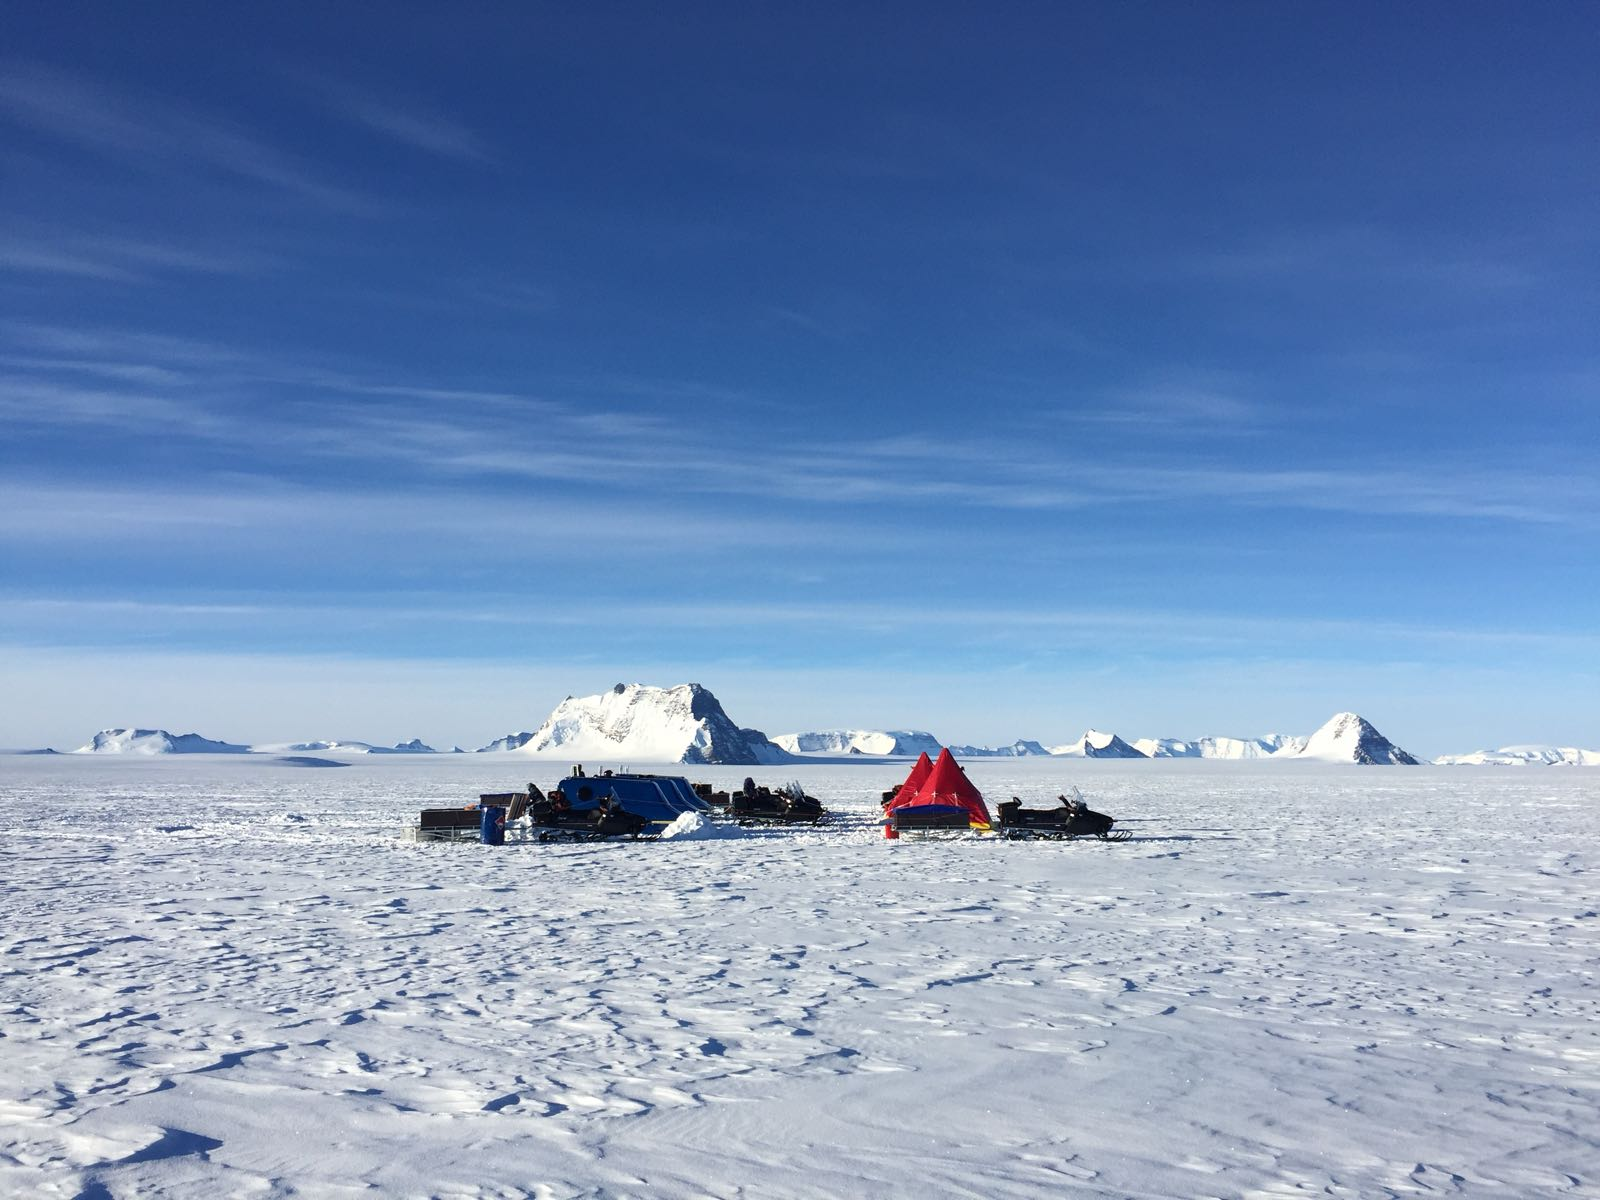 Camp on the ice